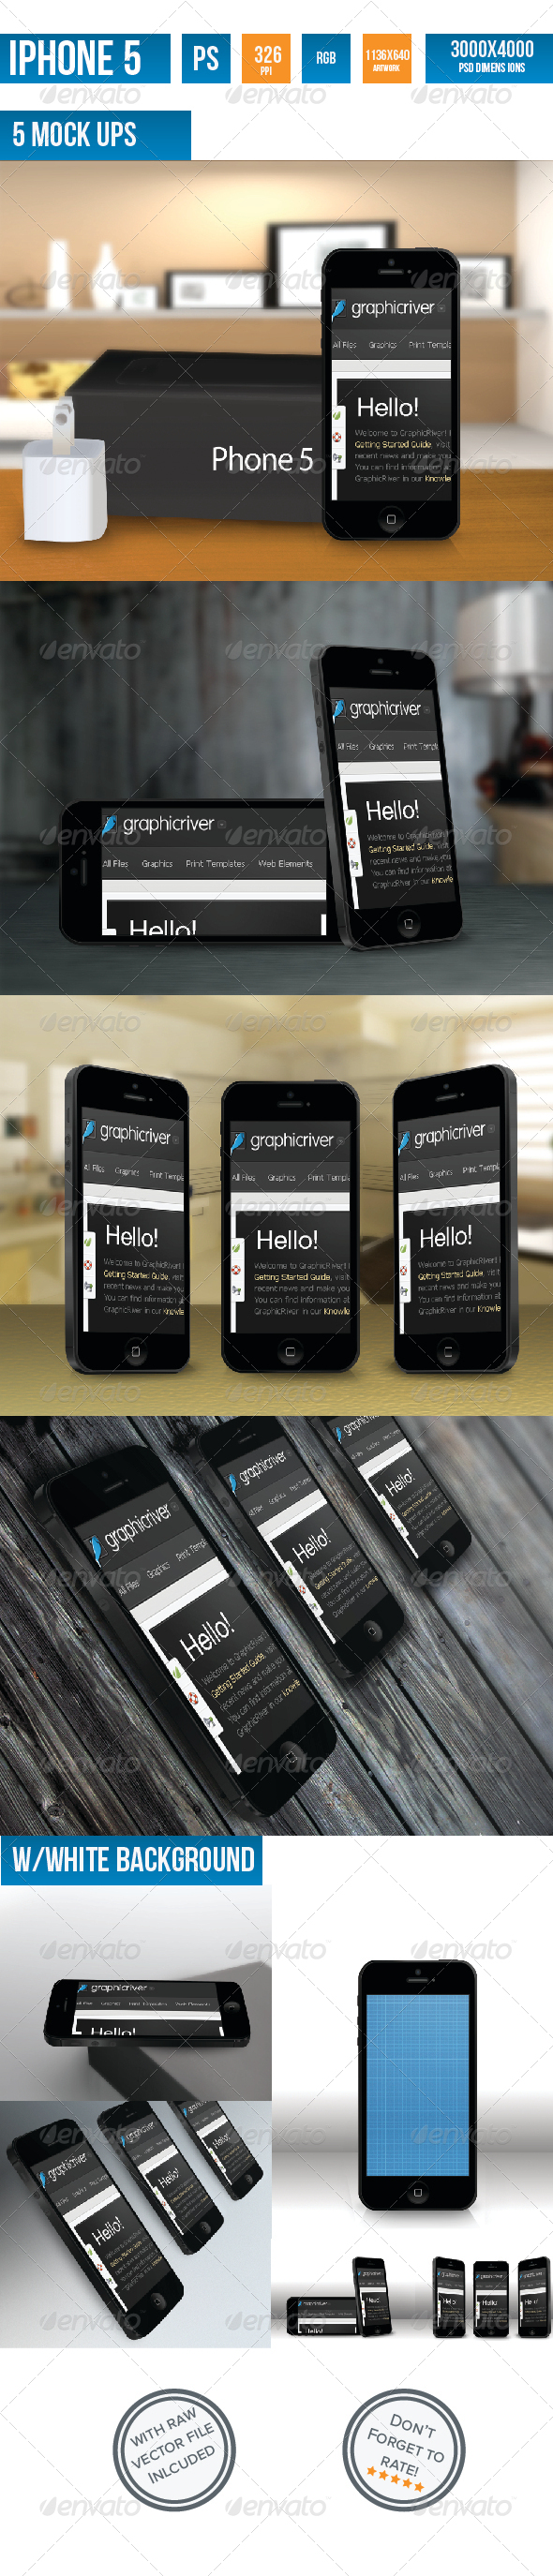 GraphicRiver iPhone 5 Photorealistic Mock-UP 4151133